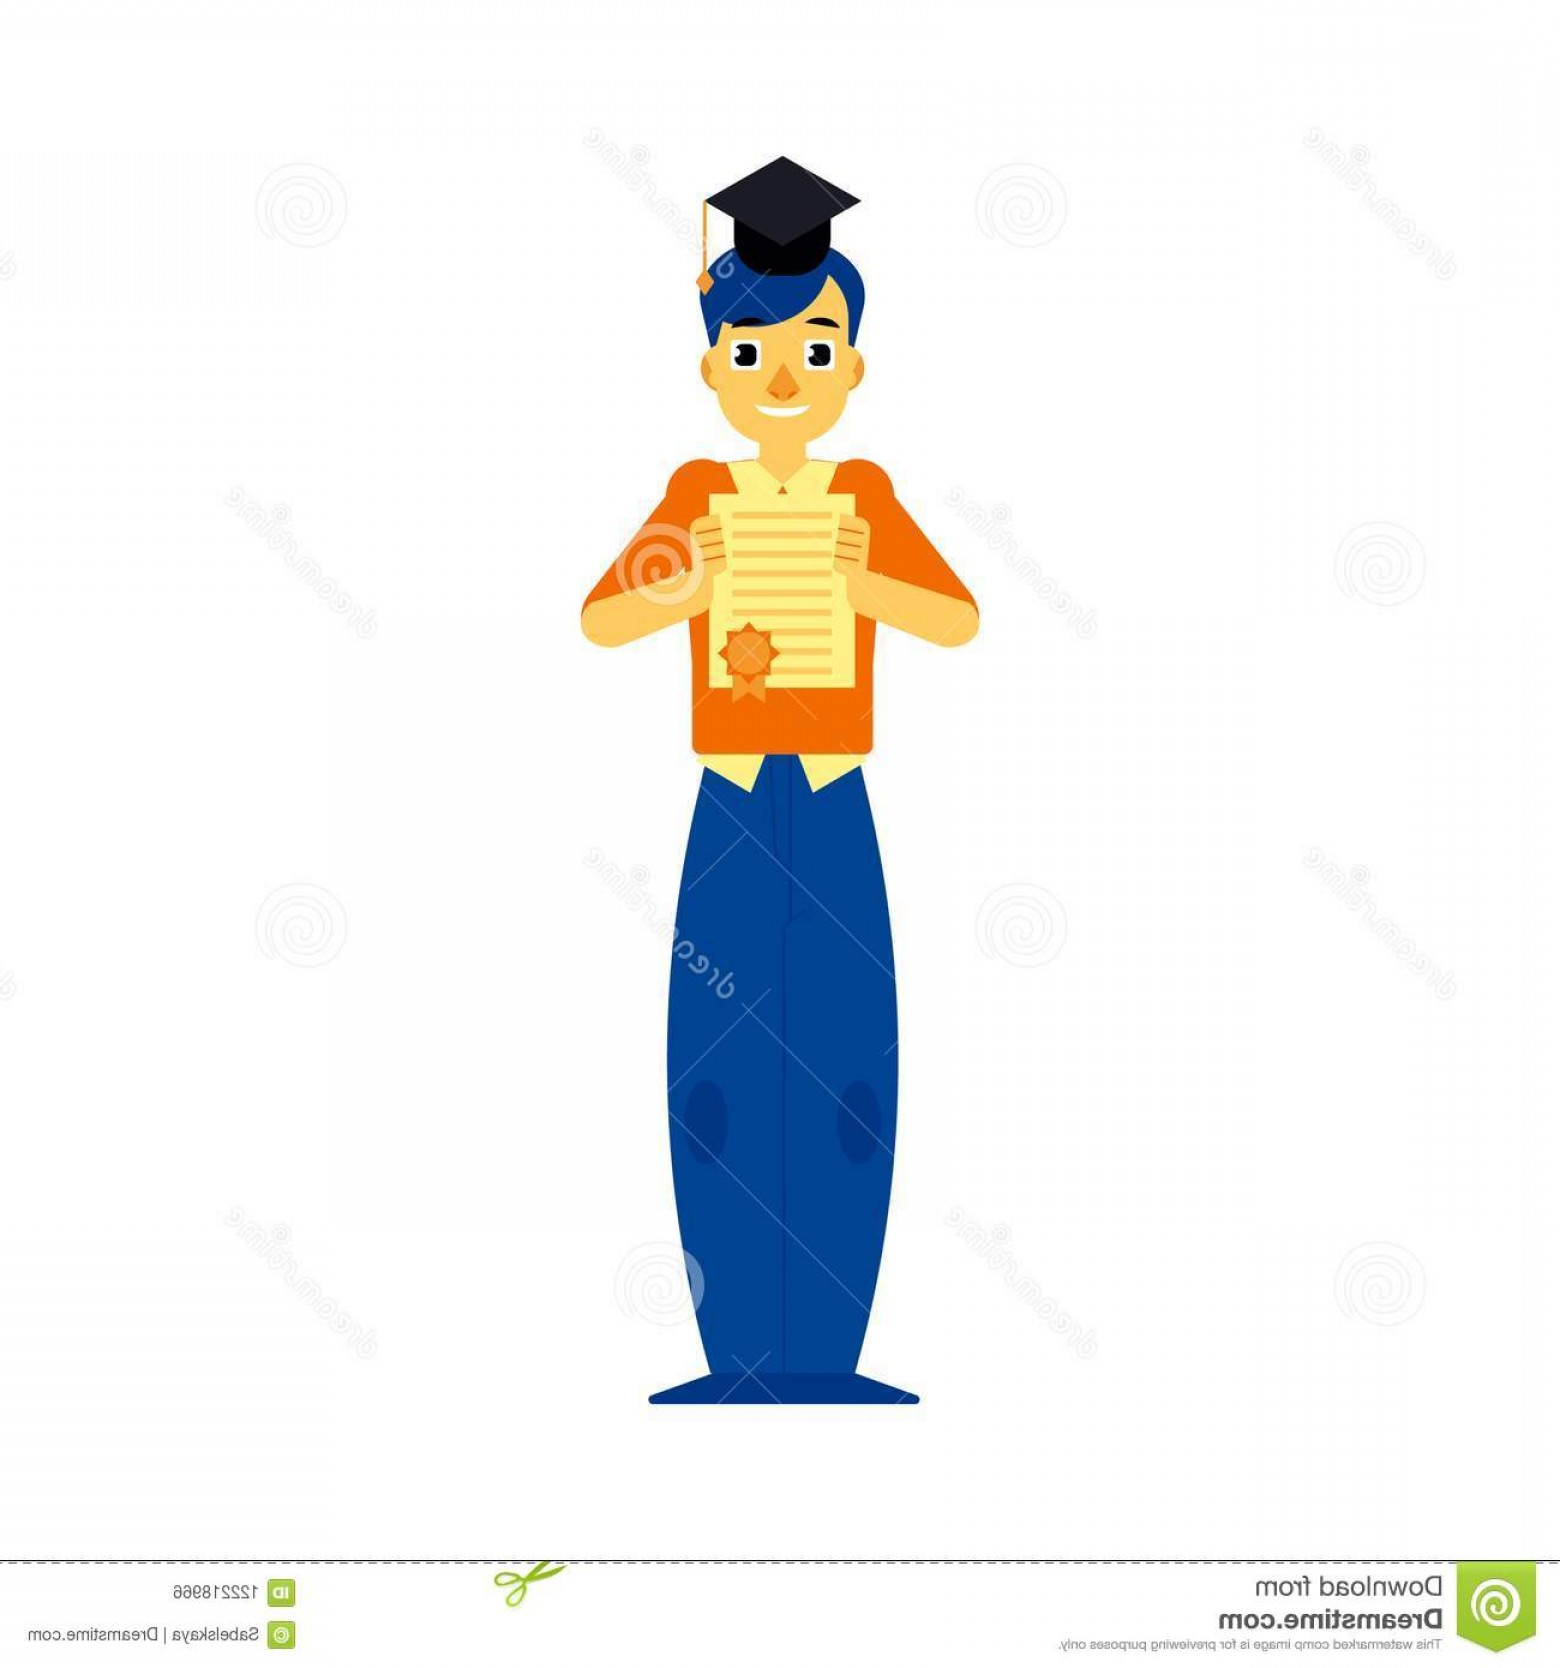 Standing Diploma Vector: Cheerful Student Graduate Man Standing University Cap Holding Diploma Graduation Certificate Smiling Male Character Image